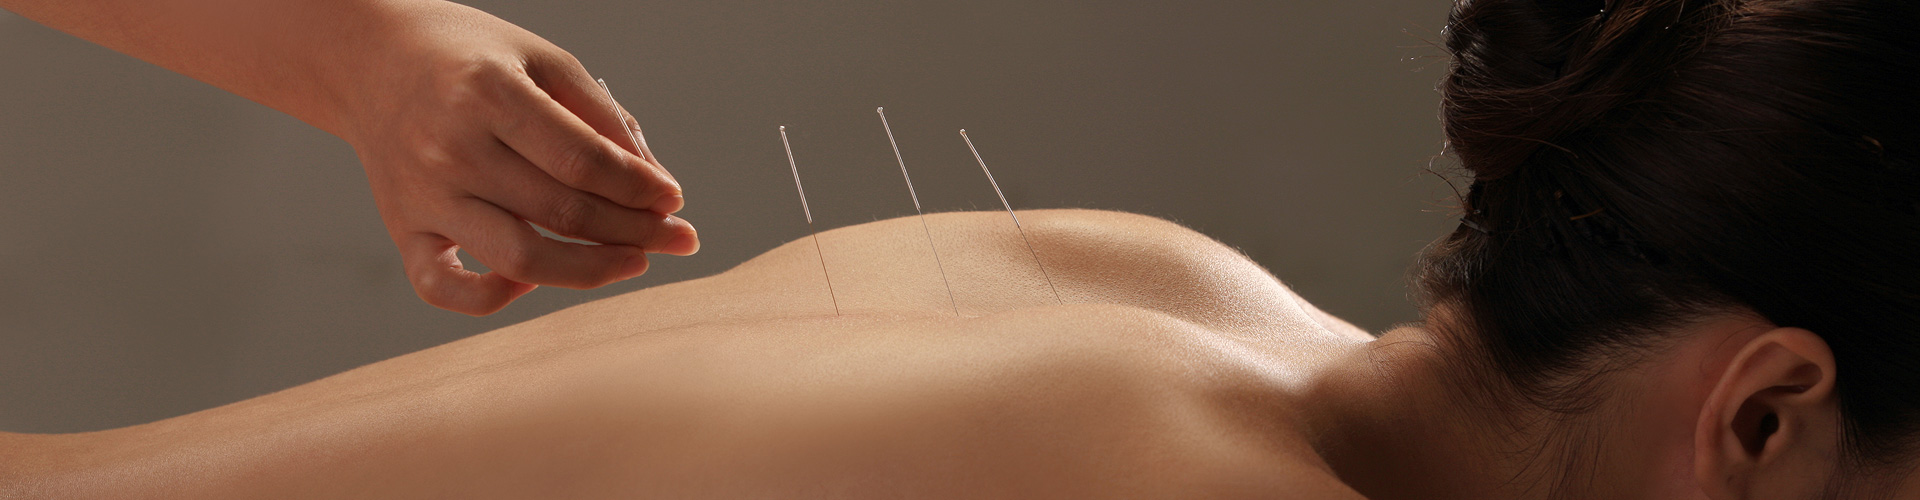 ACUPUNCTURE, MASSAGE AND REFLEXOLOGY</BR>TO HELP A WIDE RANGE OF CONDITIONS